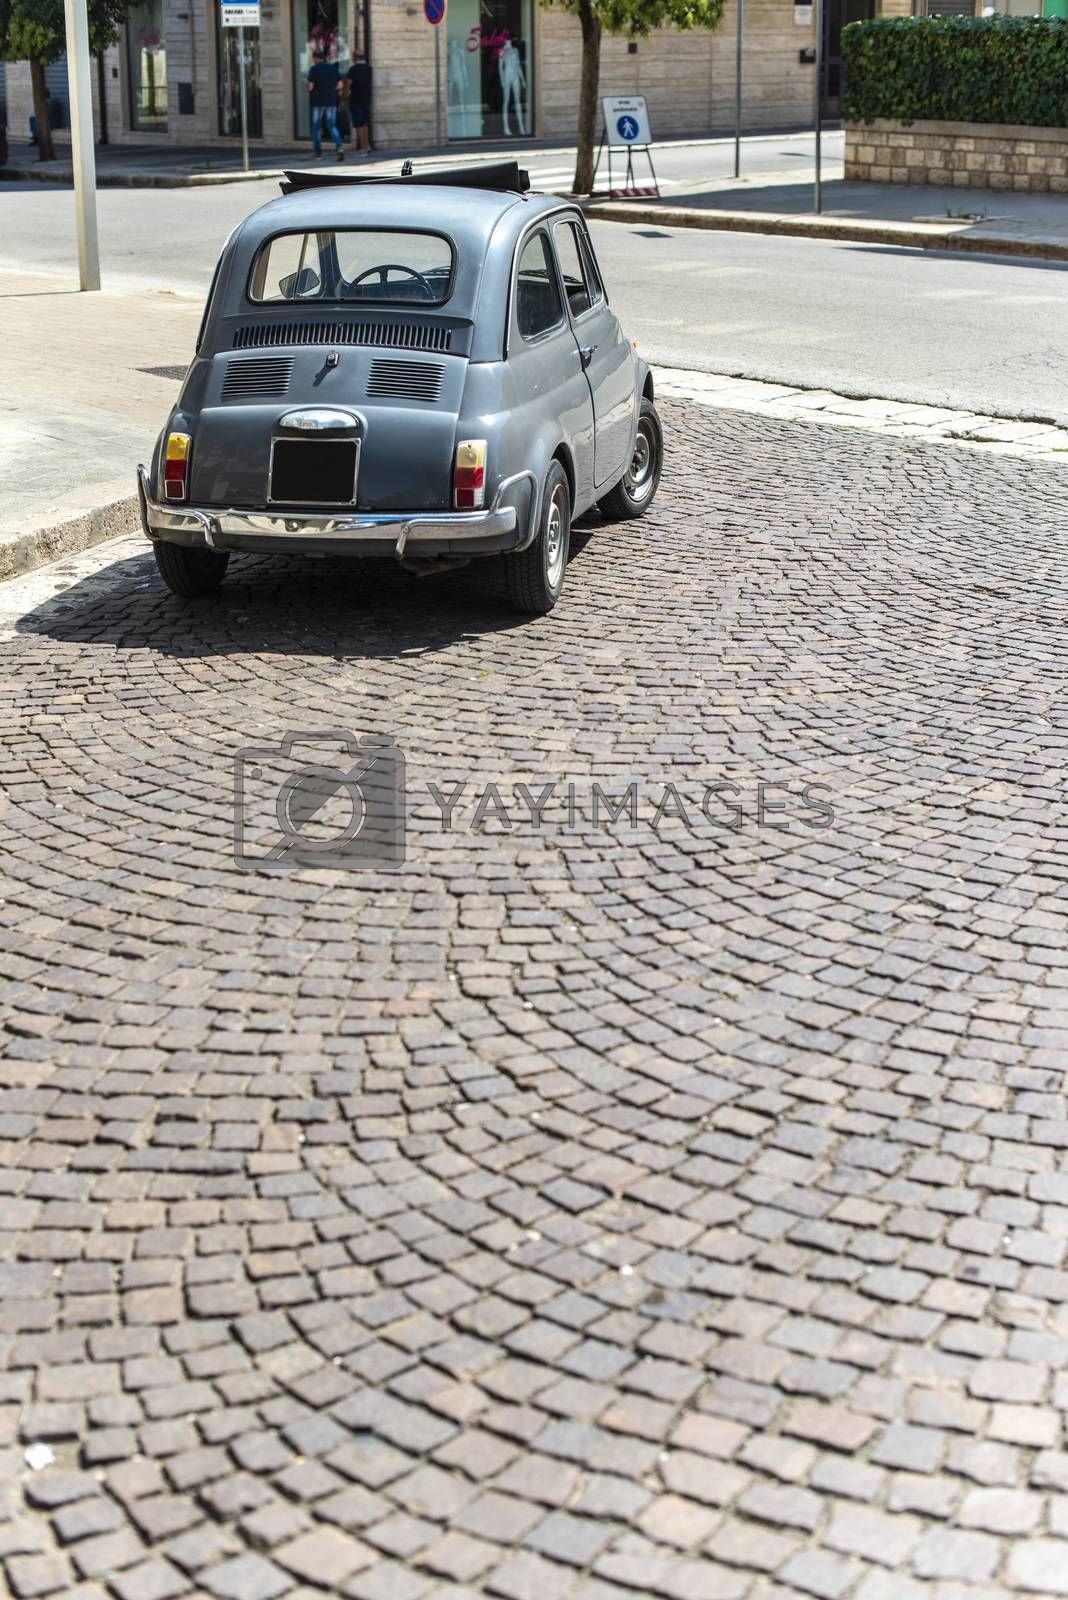 Vintage small car on traditional italian paved street. Dark grey old car.